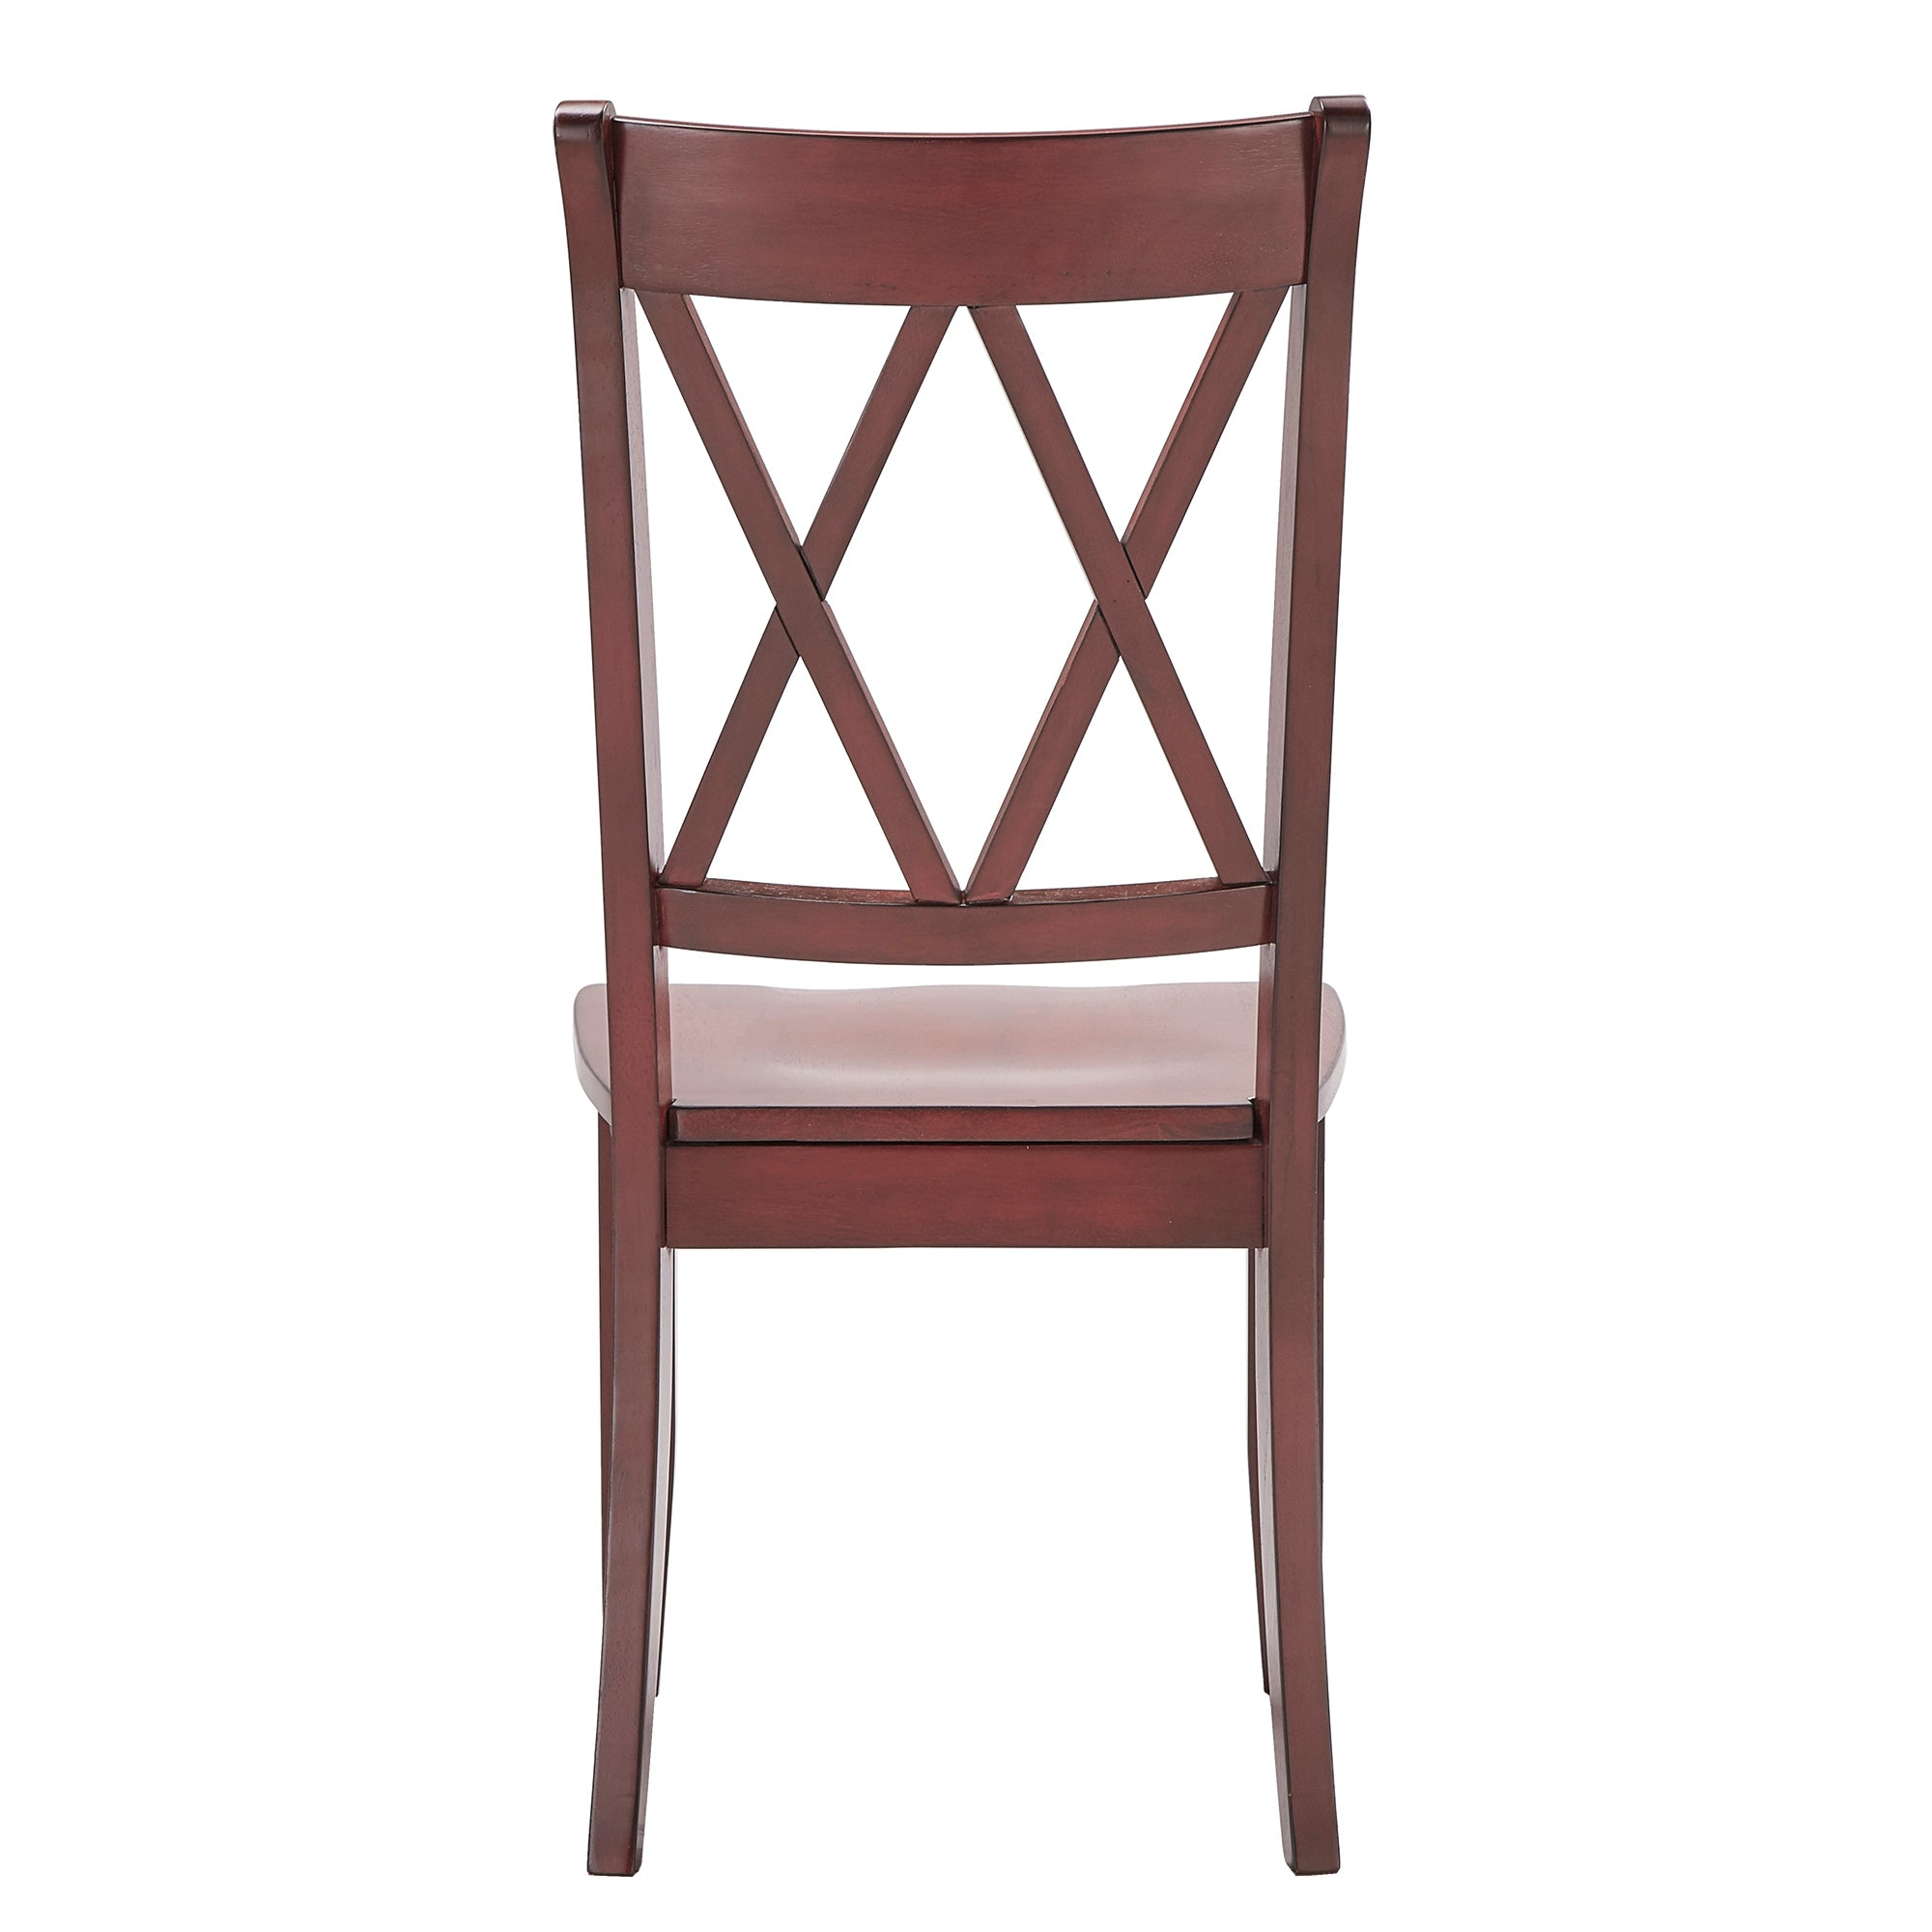 Double X Back Wood Dining Chair (Set of 2) - Antique Berry Red